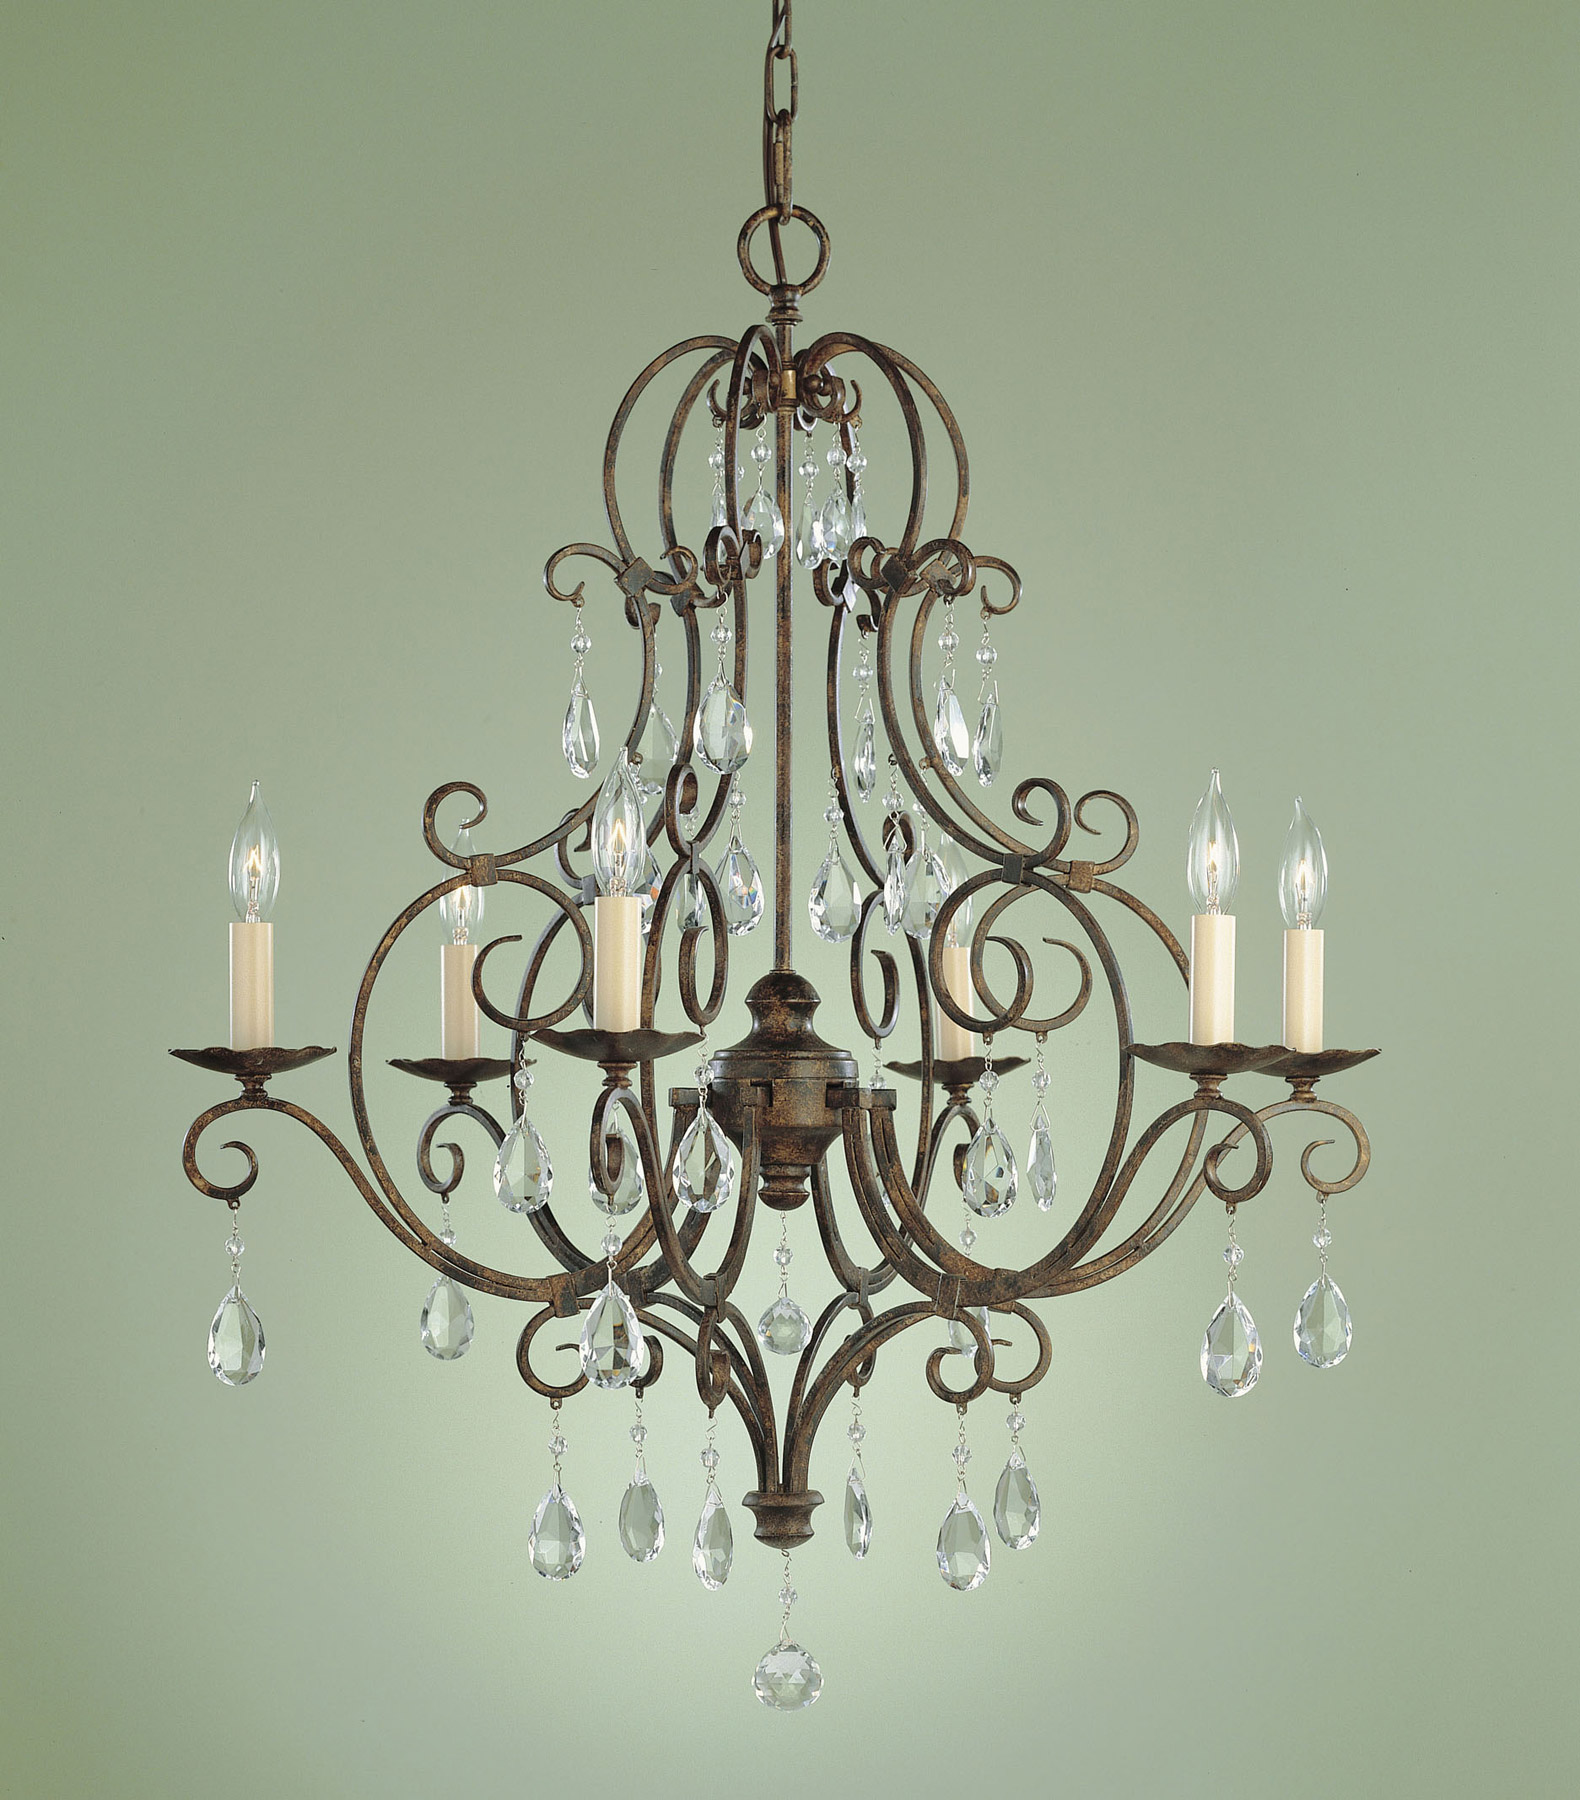 Murray Feiss Chandelier 6 Light: Murray Feiss F1902/6MBZ Crystal Chateau Six Light Chandelier